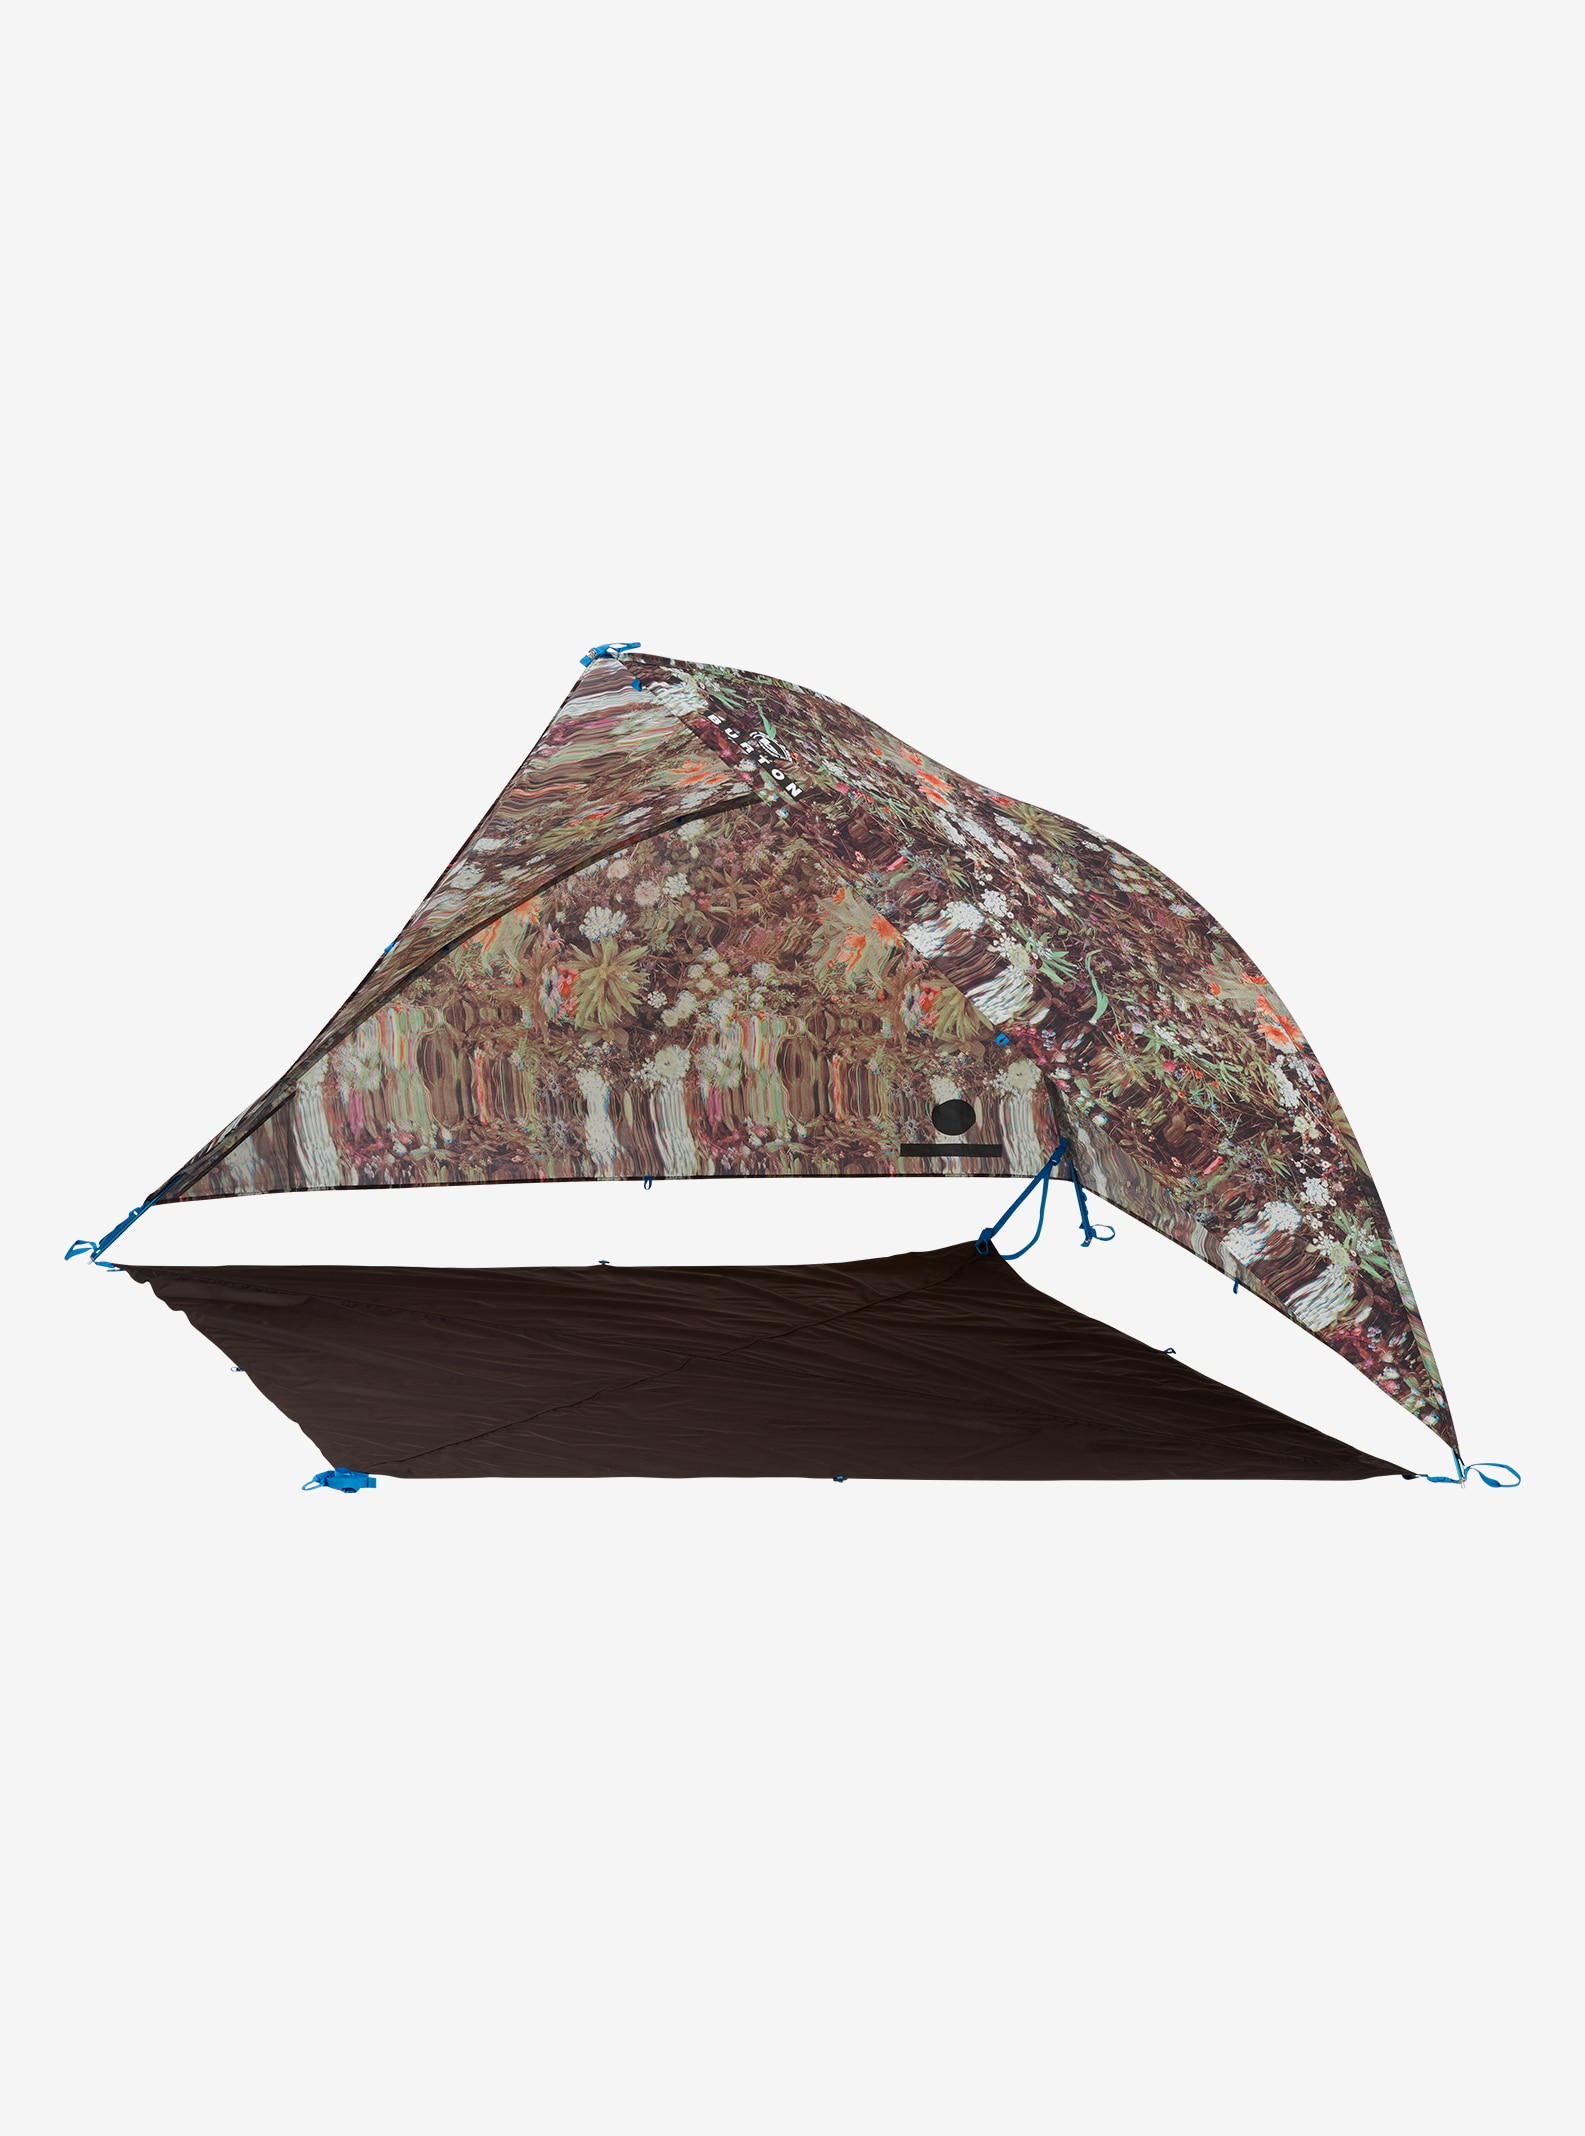 Big Agnes x Burton Whetstone Shelter - Large shown in Day Tripper Print